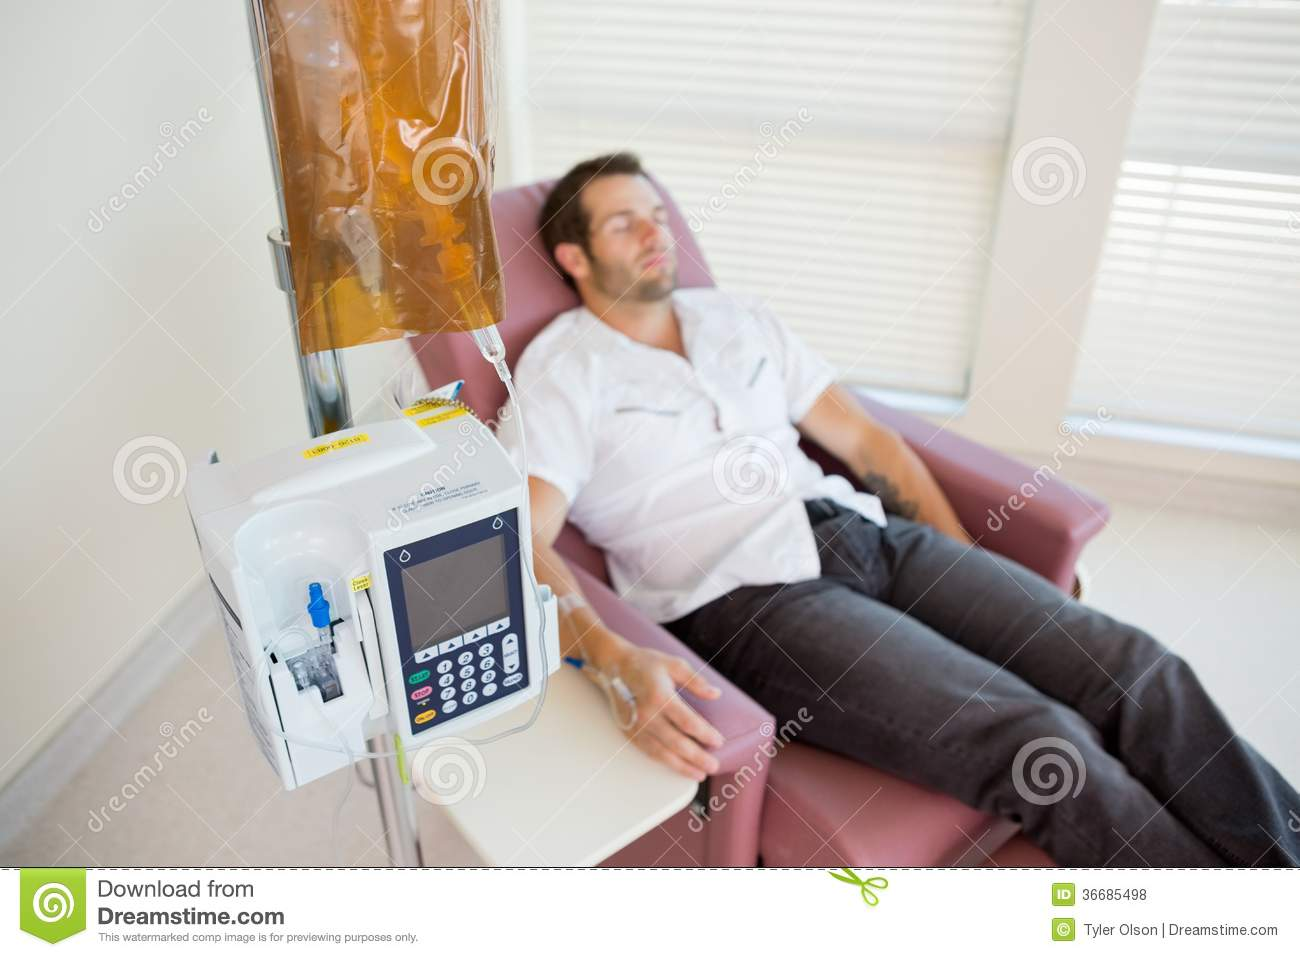 Patient Receiving Chemotherapy Through IV Drip